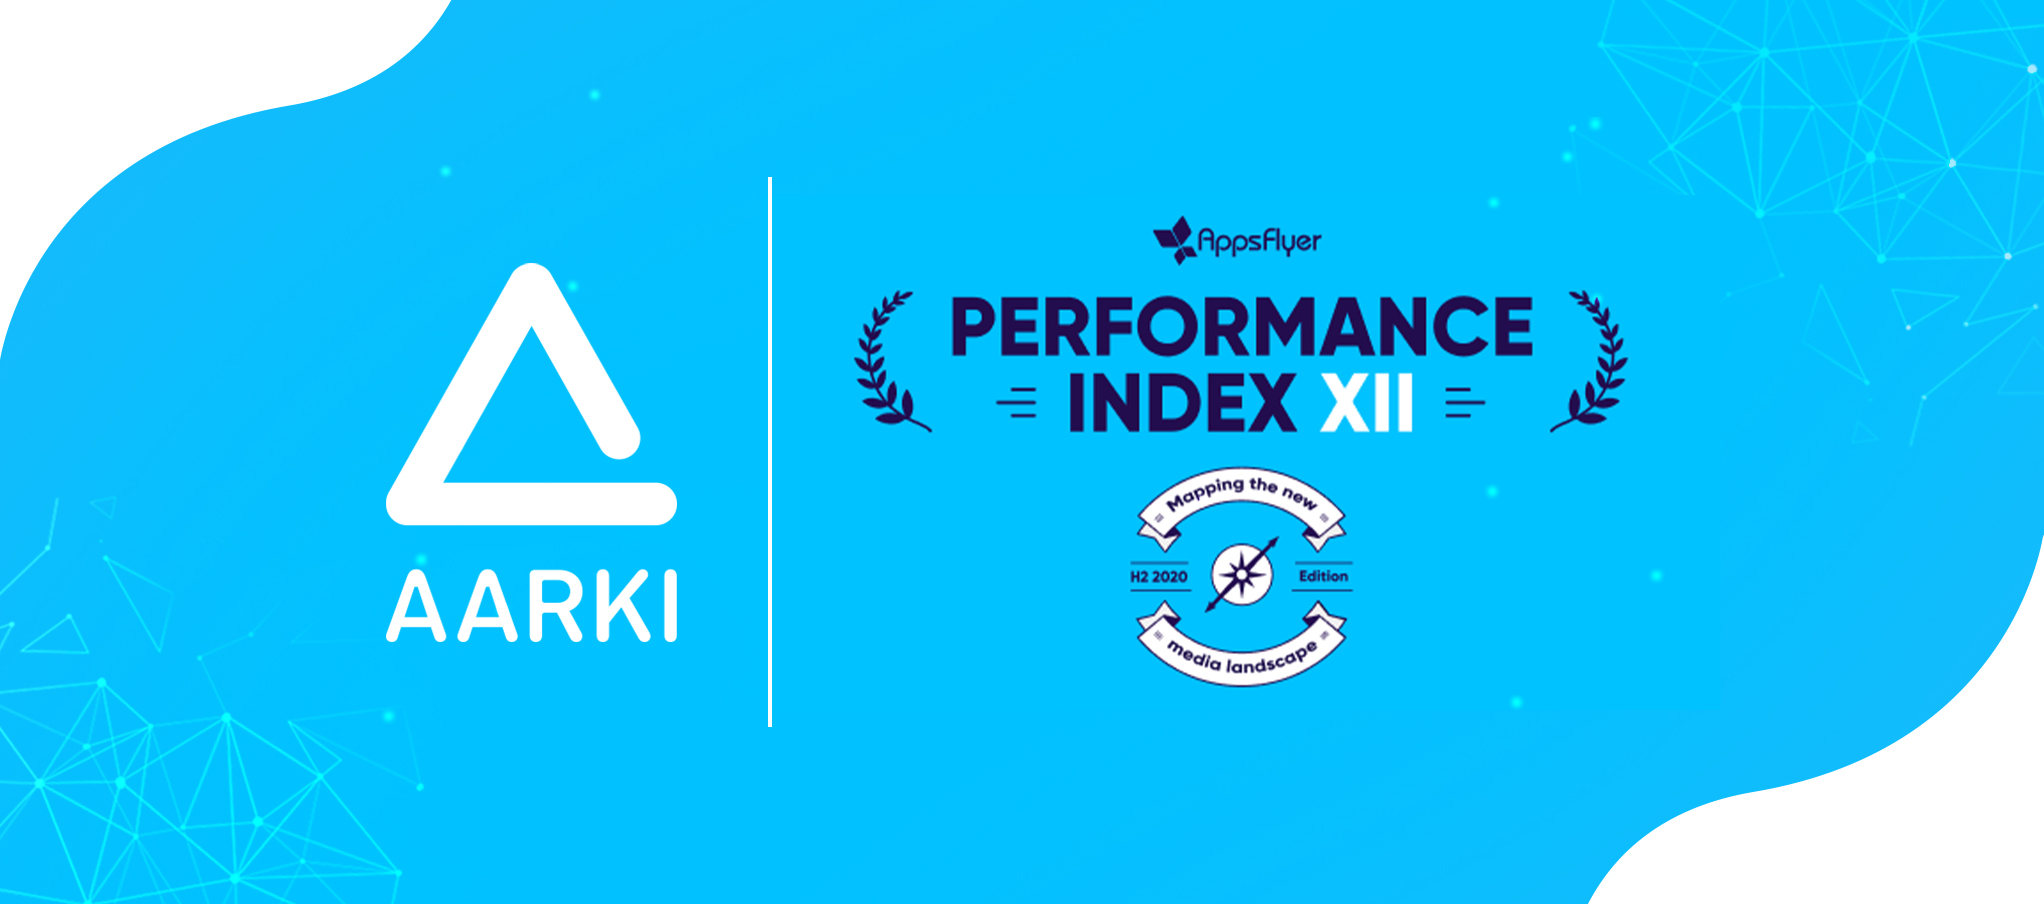 Aarki ranks on the AppsFlyer Performance Index